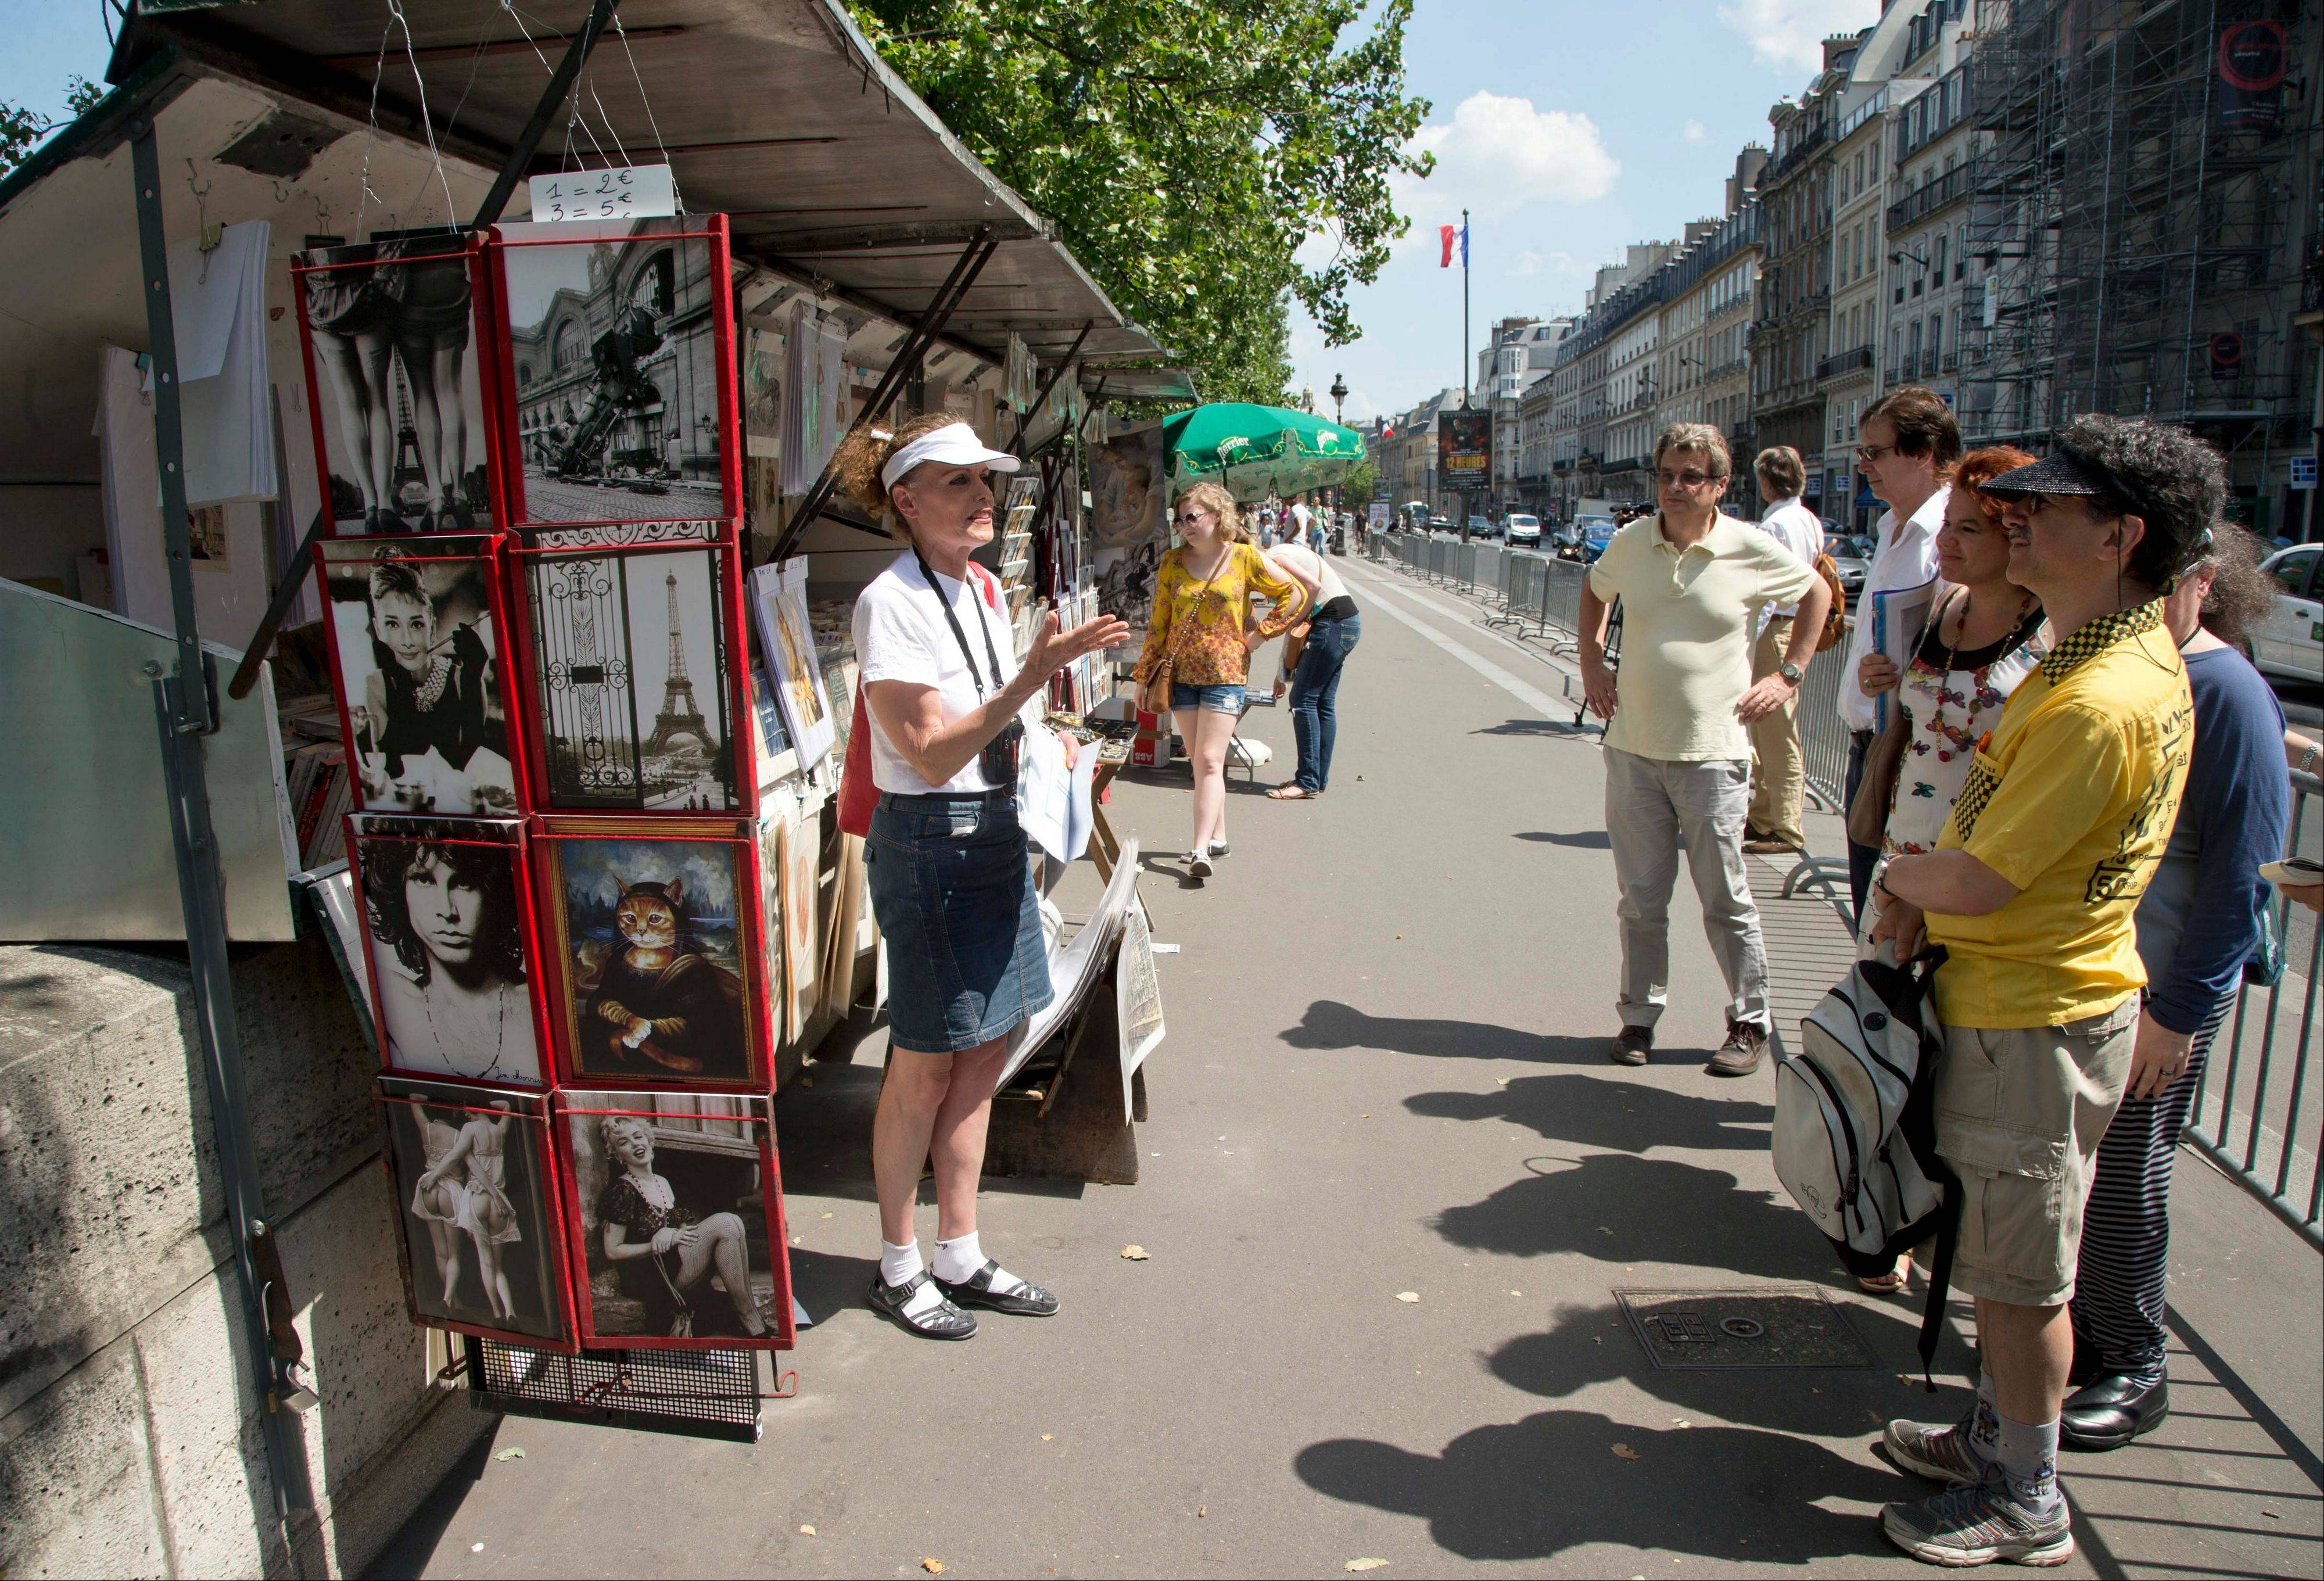 Tour guide Shari Segall, left, speaks about Thomas Jefferson next to a book stand during a tour around the main spots of the Revolutonary-era American presence on Paris' left bank.